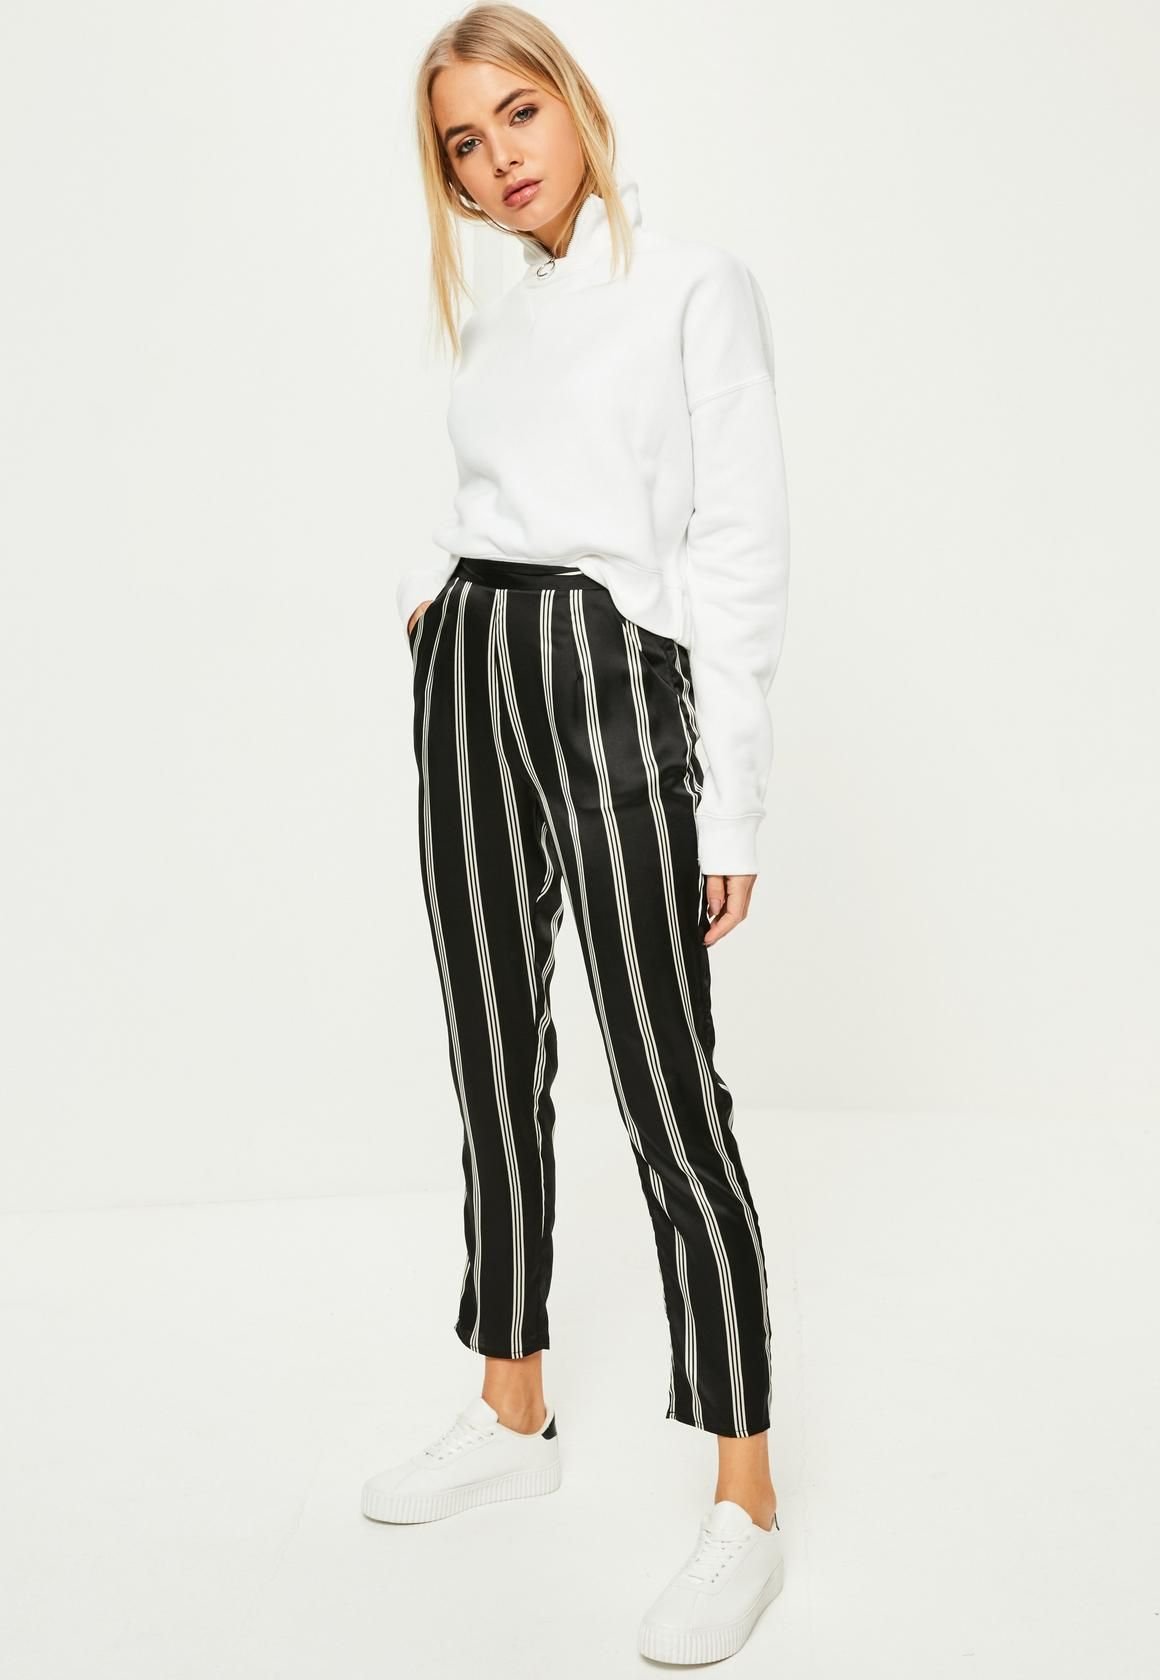 01cfffce0 Missguided - Black Striped Satin Cigarette Pants >> cuff them to make it  look like kyle's celine pants